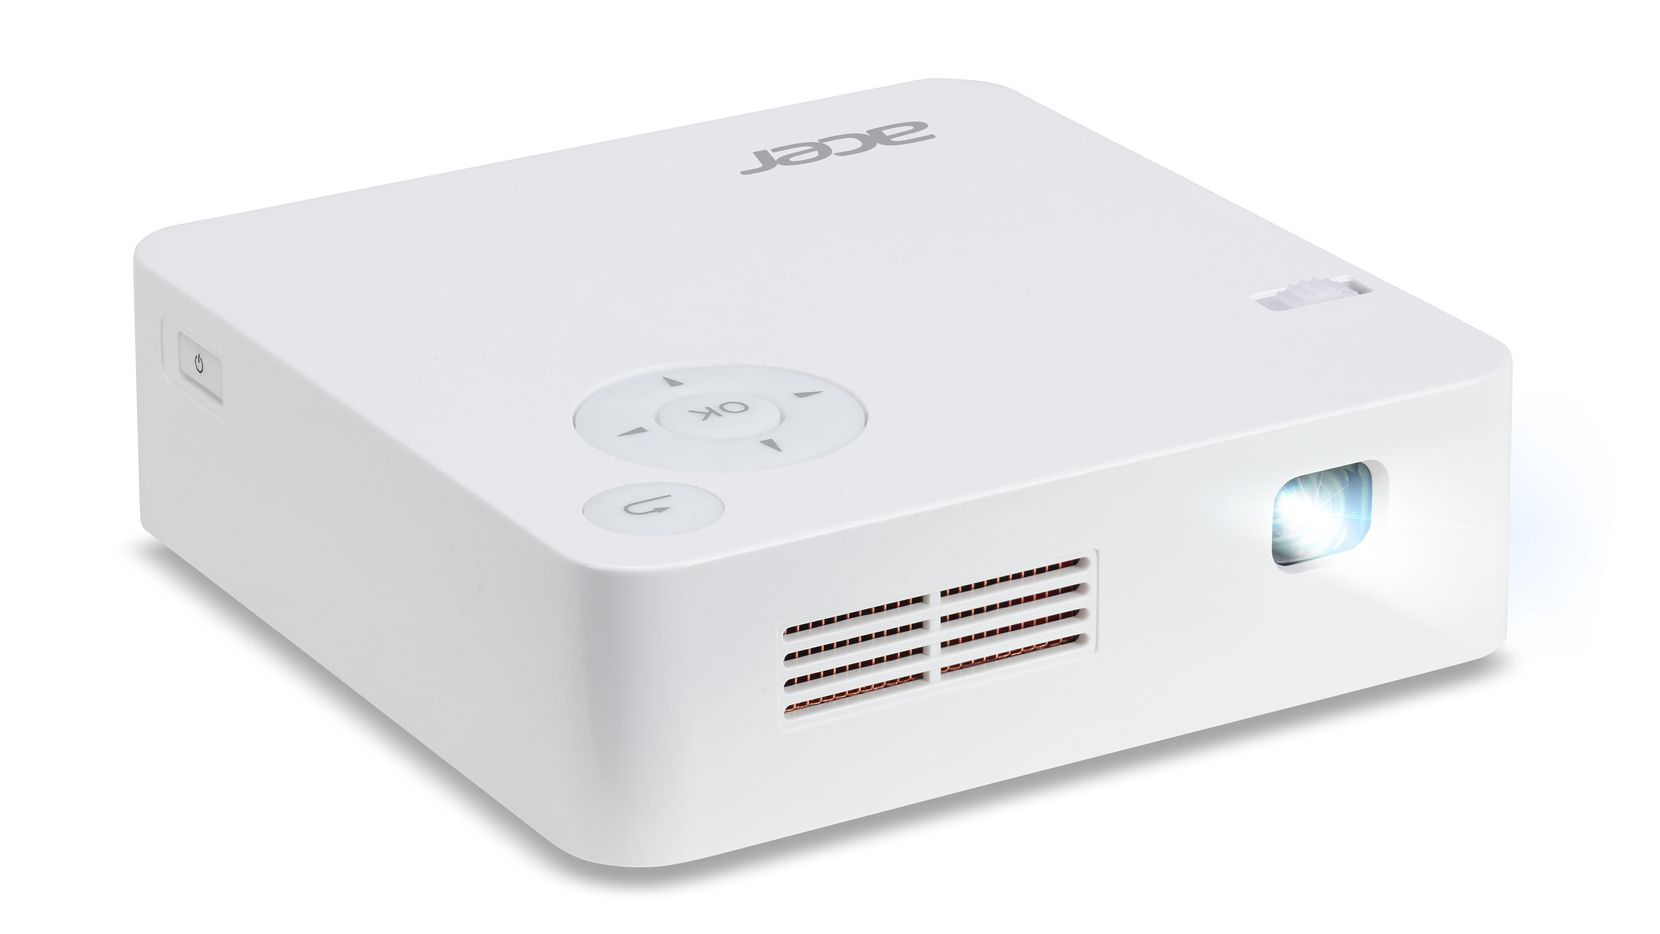 The Acer C202i Portable LED projector